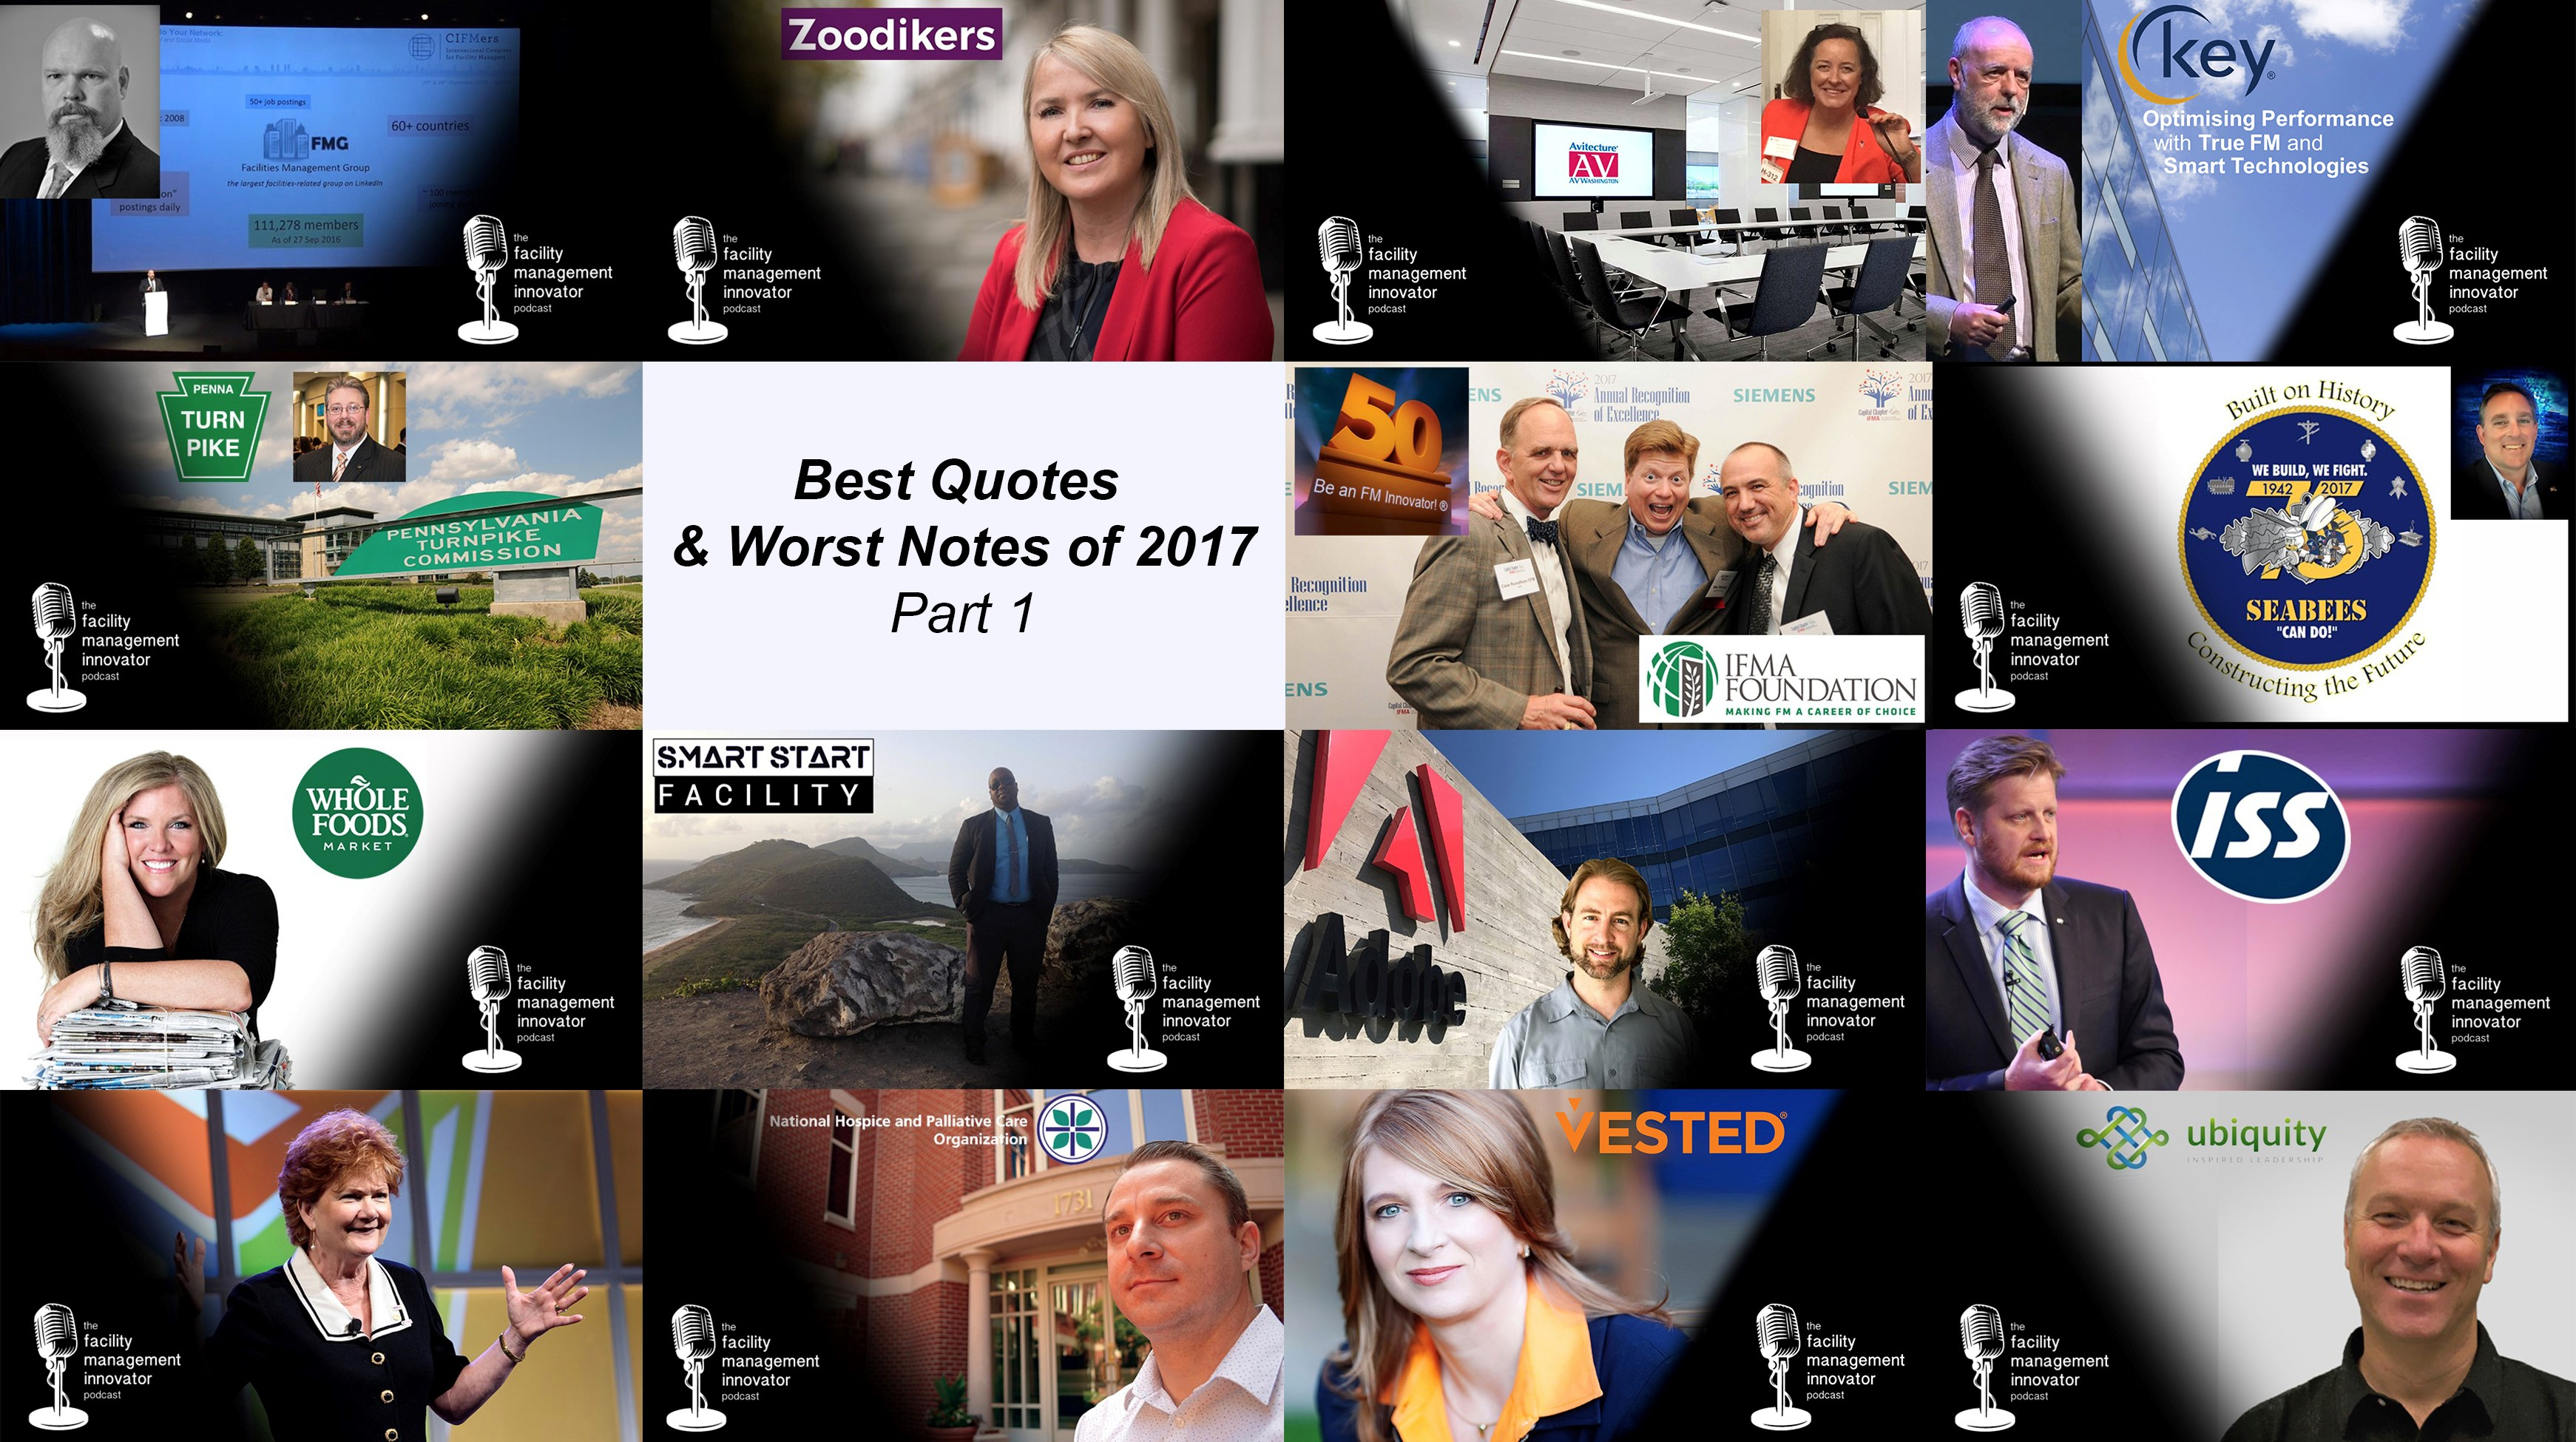 Ep. 69: Best Quotes & Worst Notes of 2017 (Part 1) | An FM Innovator Podcast Retrospective